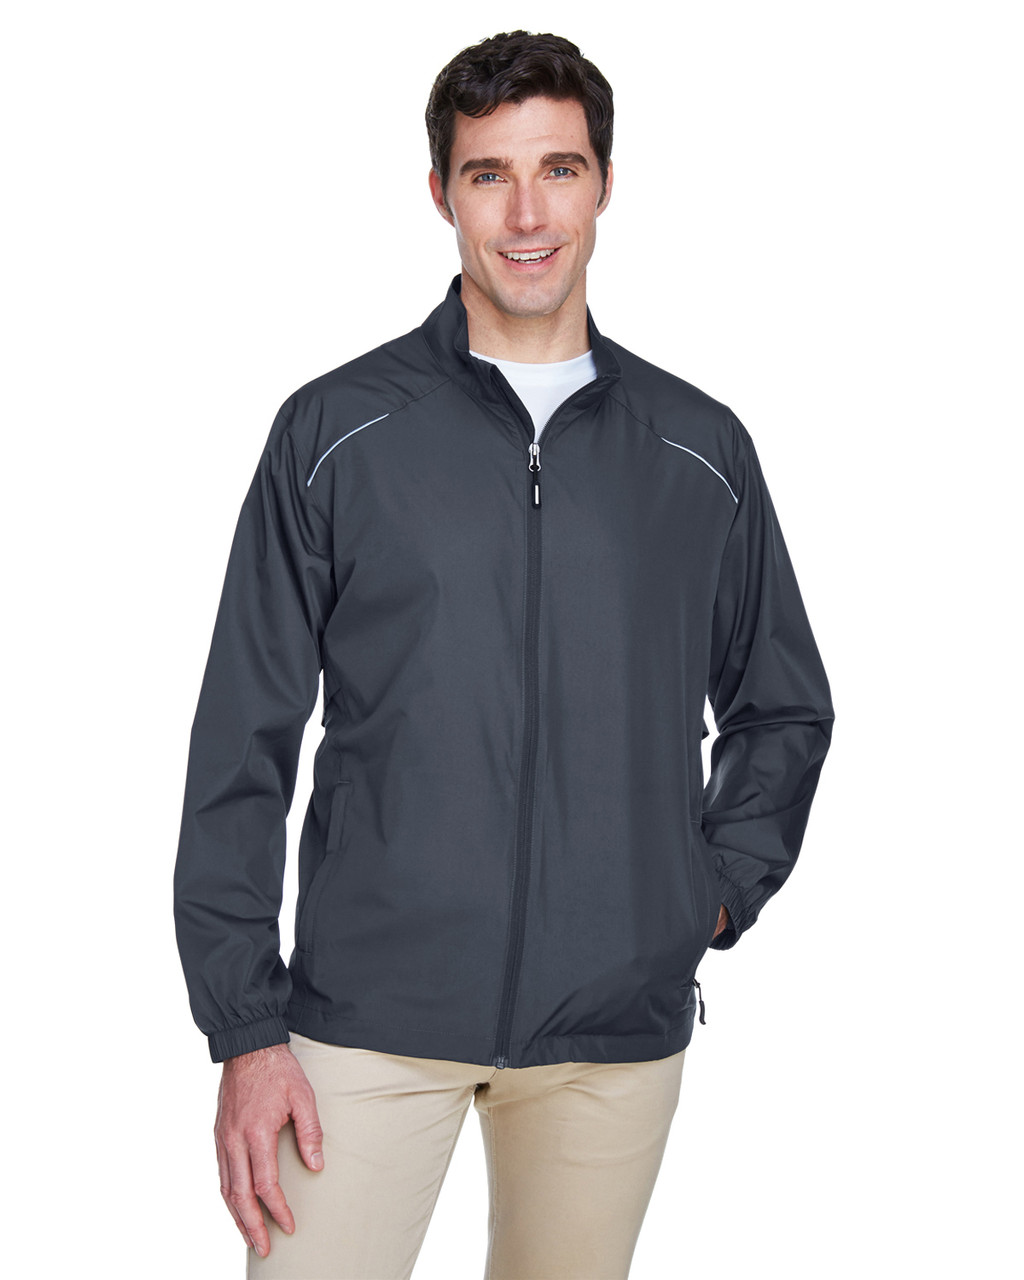 Carbon - 88183 Ash City - Core 365 Motivate Unlined Lightweight Jacket | Blankclothing.ca